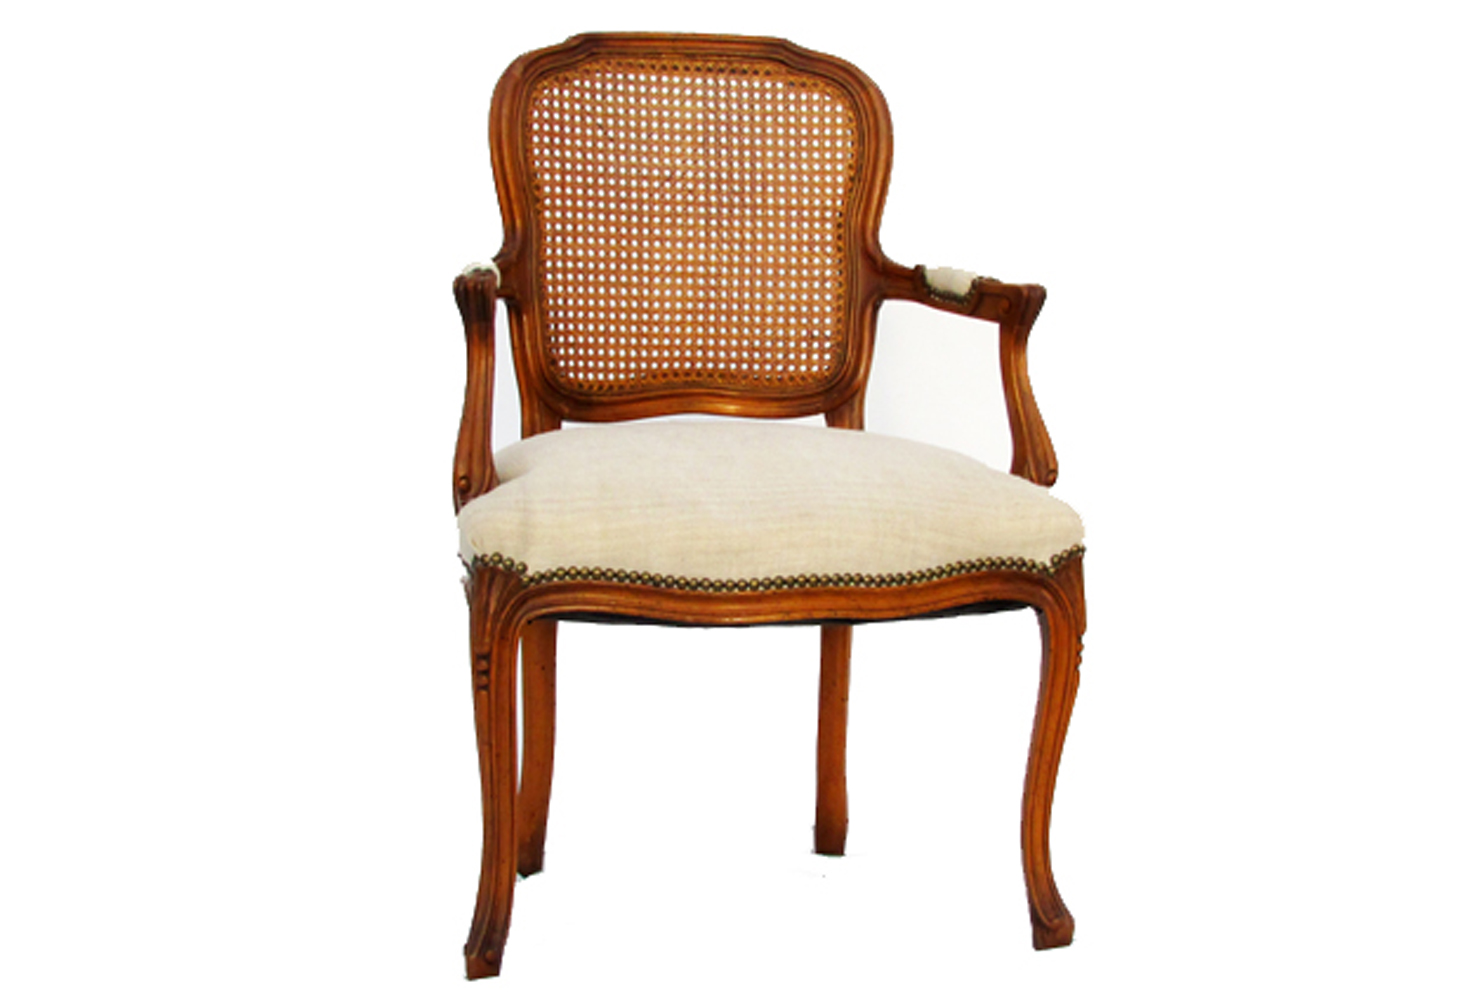 Antique French Cane Back Arm Chair